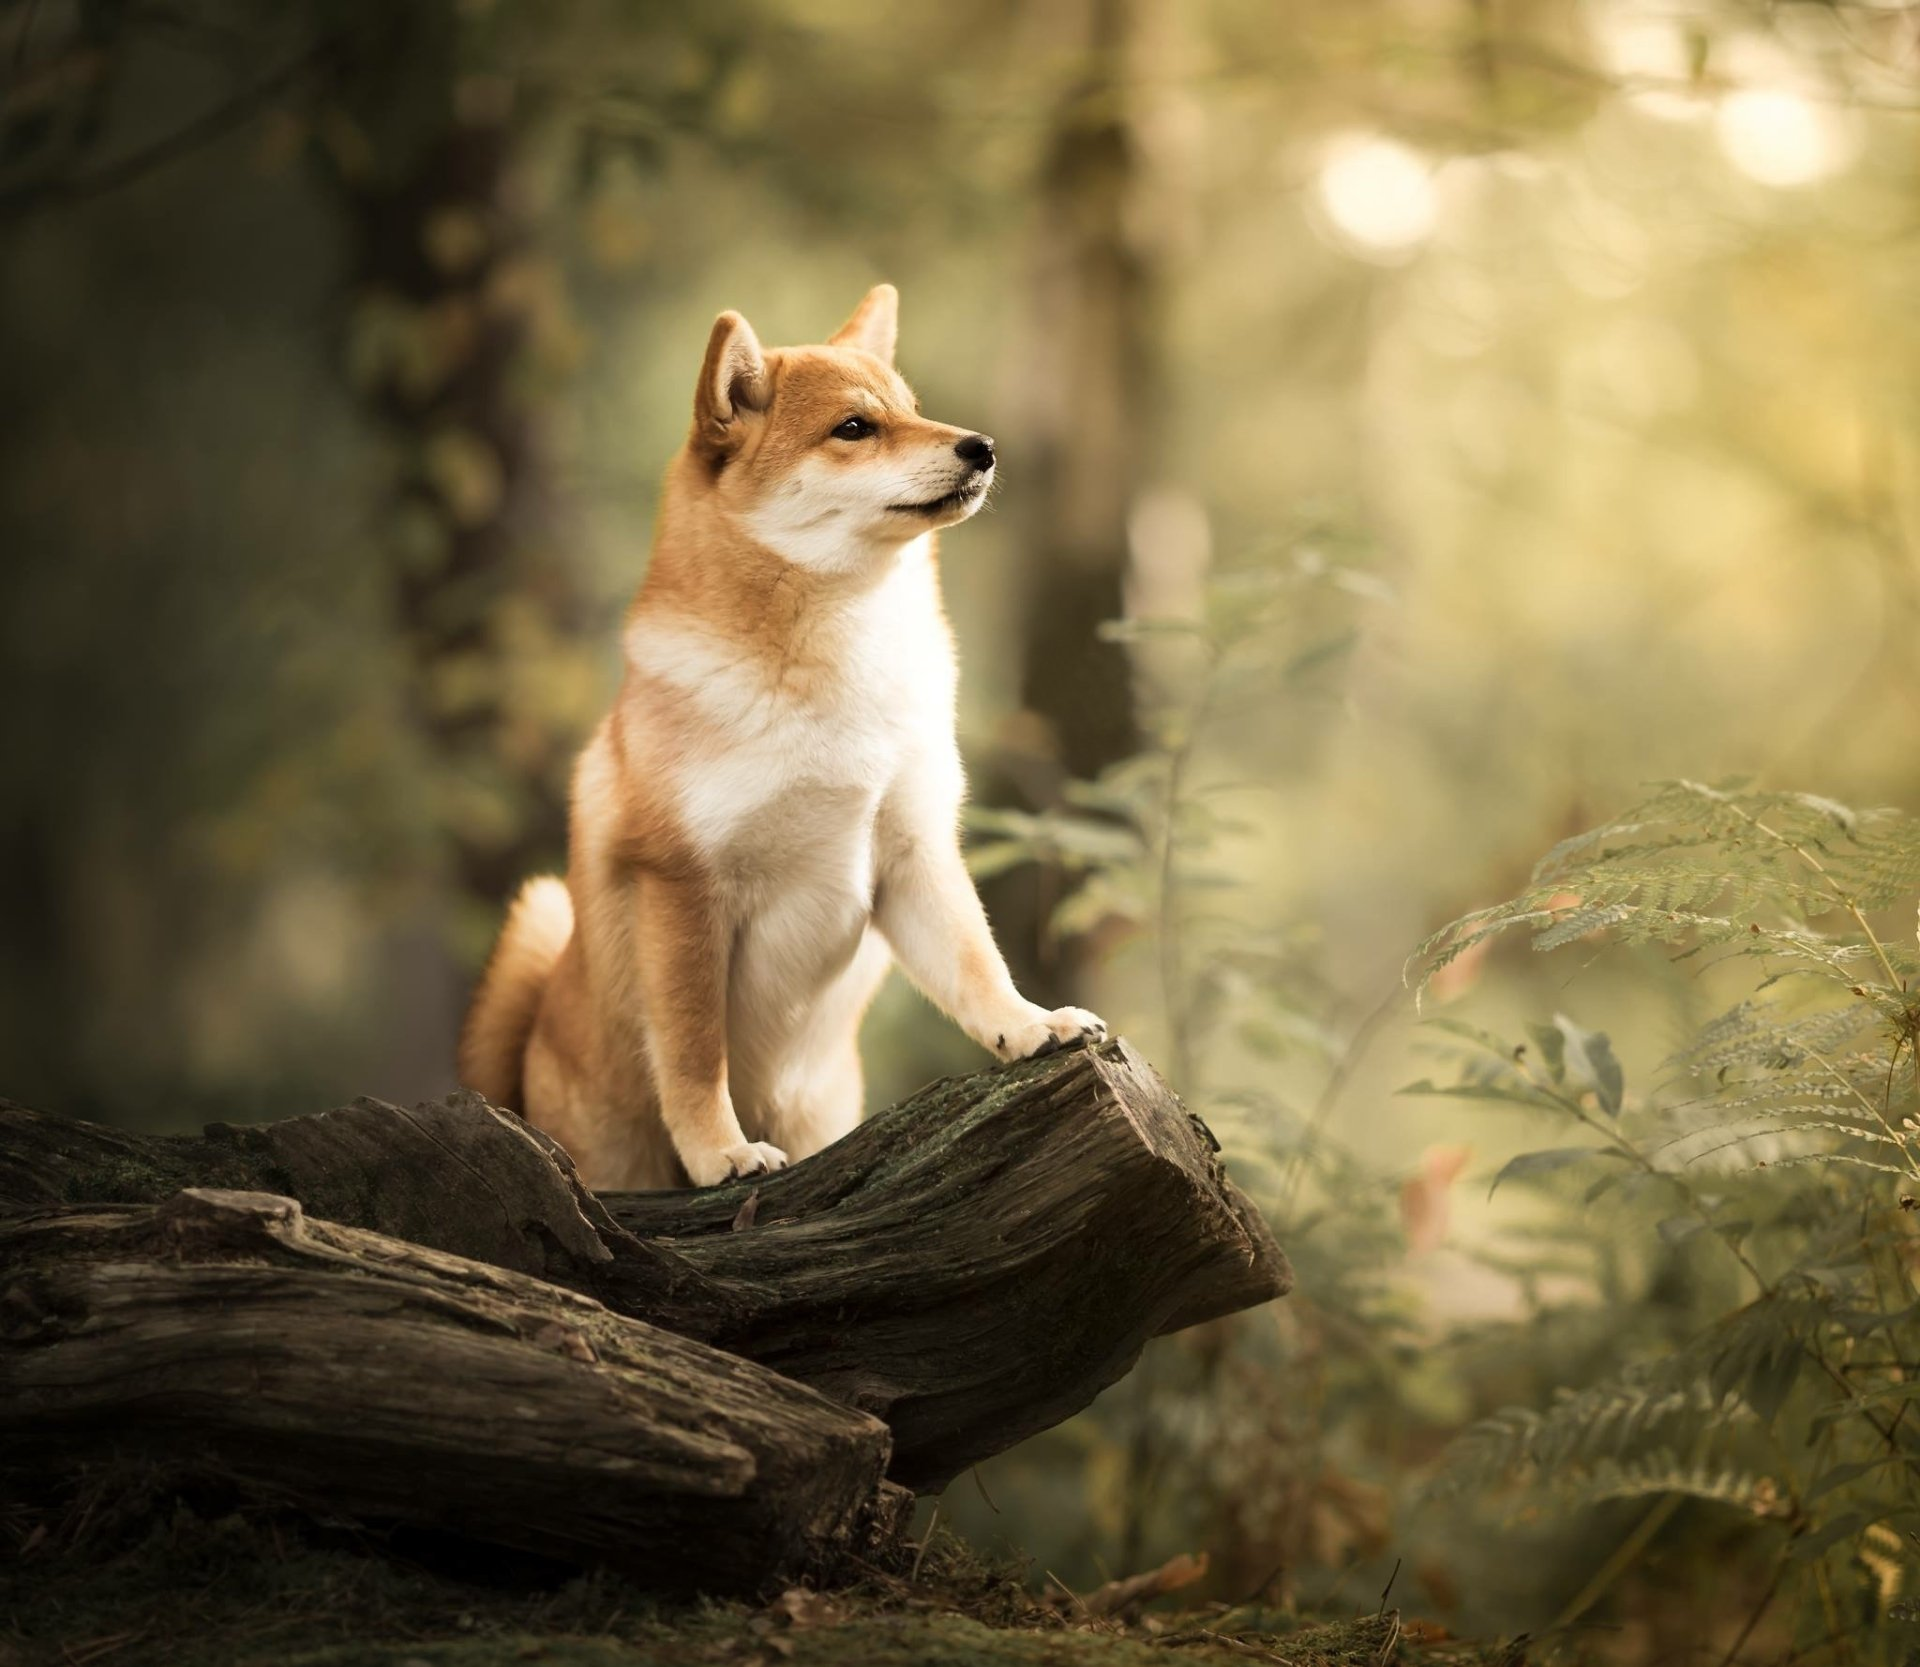 Cute Baby Animal Wallpapers Desktop Shiba Inu Hd Wallpaper Background Image 2048x1778 Id